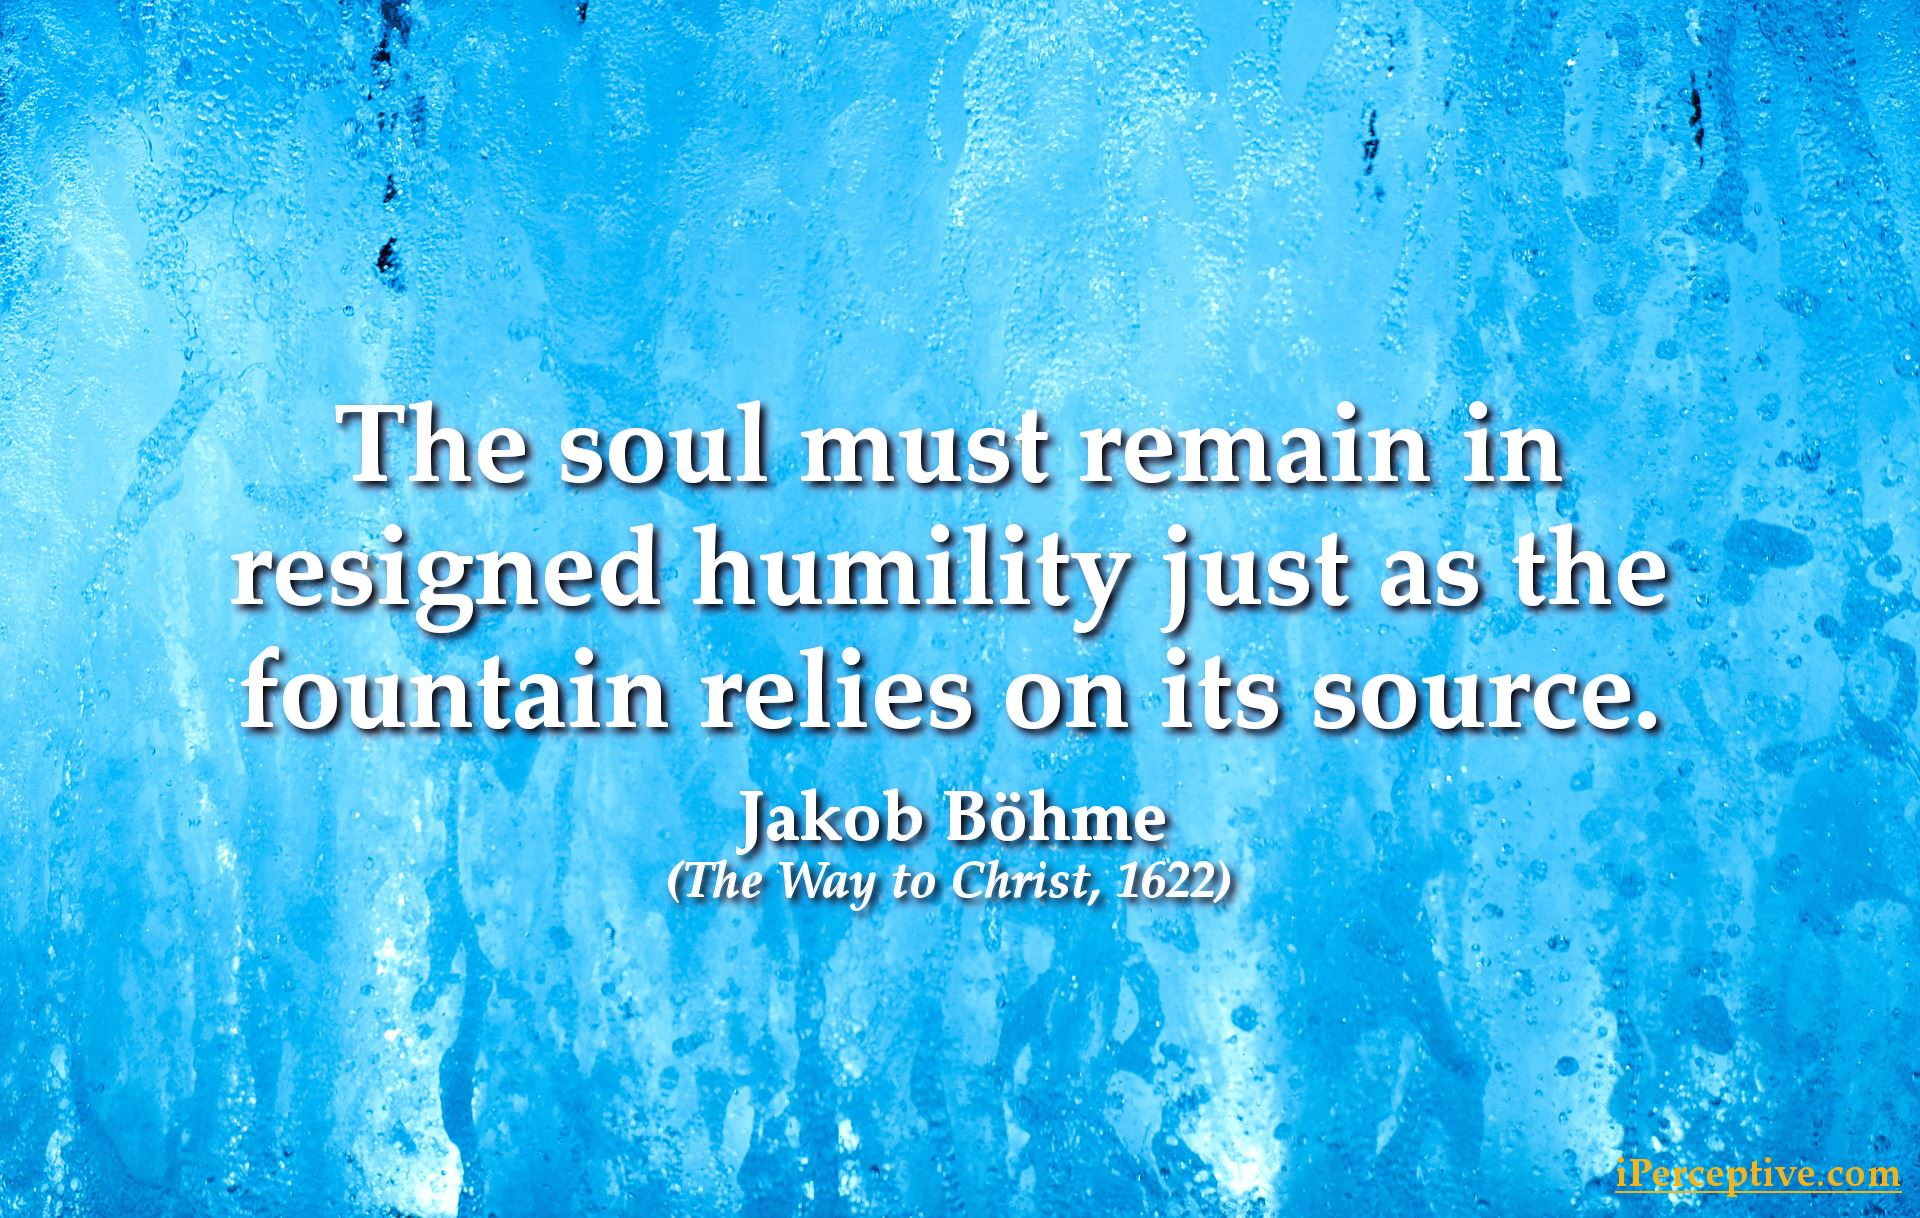 Jacob Boehme Quote: The soul must remain in resigned humility just as the fountain relies...